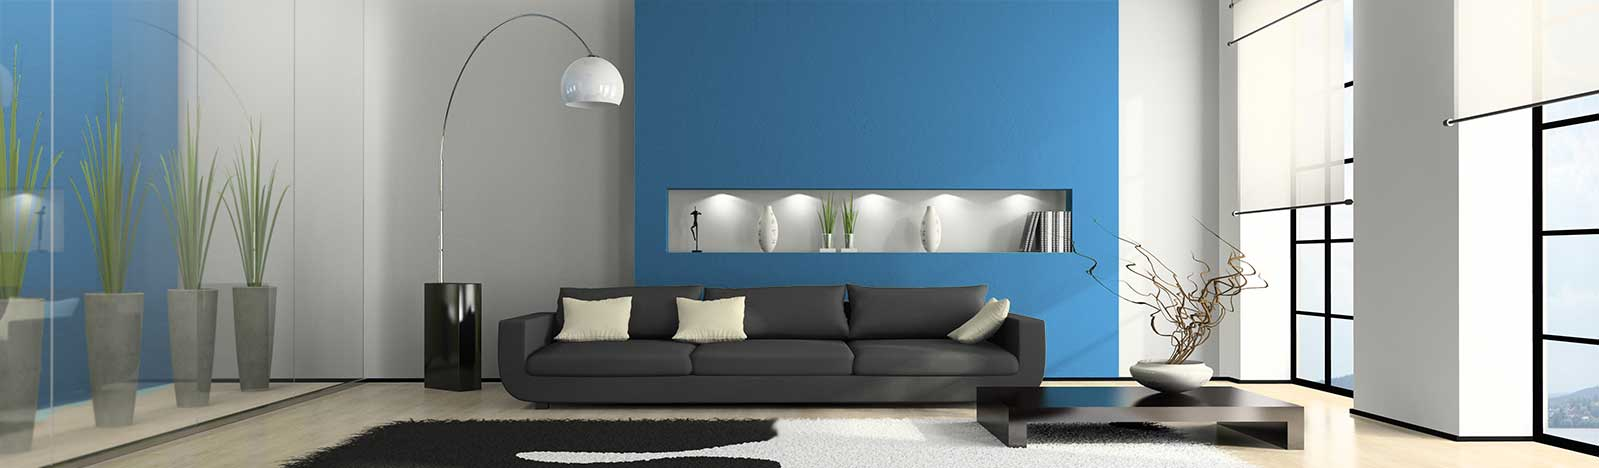 Loft-style living room with blue wall